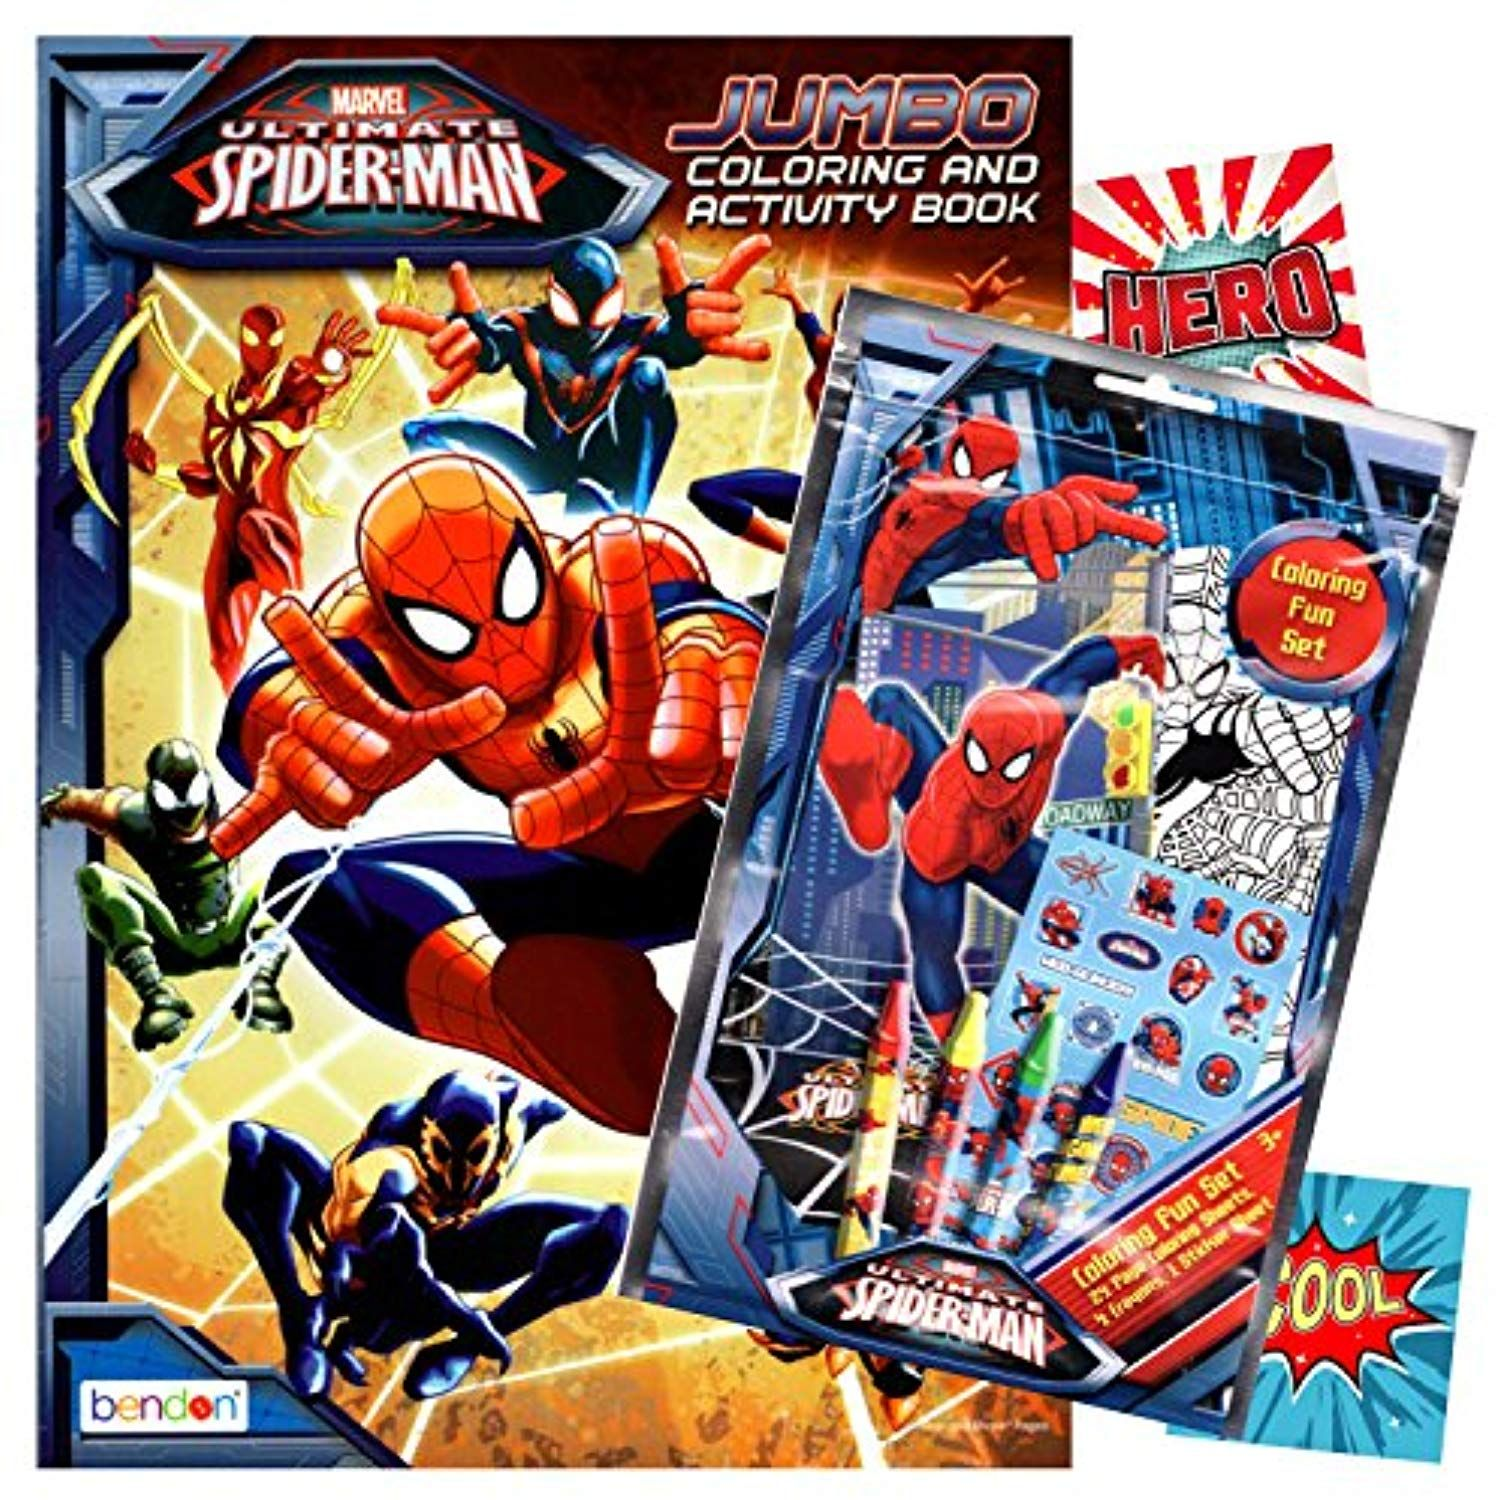 Spiderman Coloring Book With Fun Set Coloring Book And Crayons Stickers Want To Know More Click On Th Spiderman Coloring Coloring Books Marvel Coloring